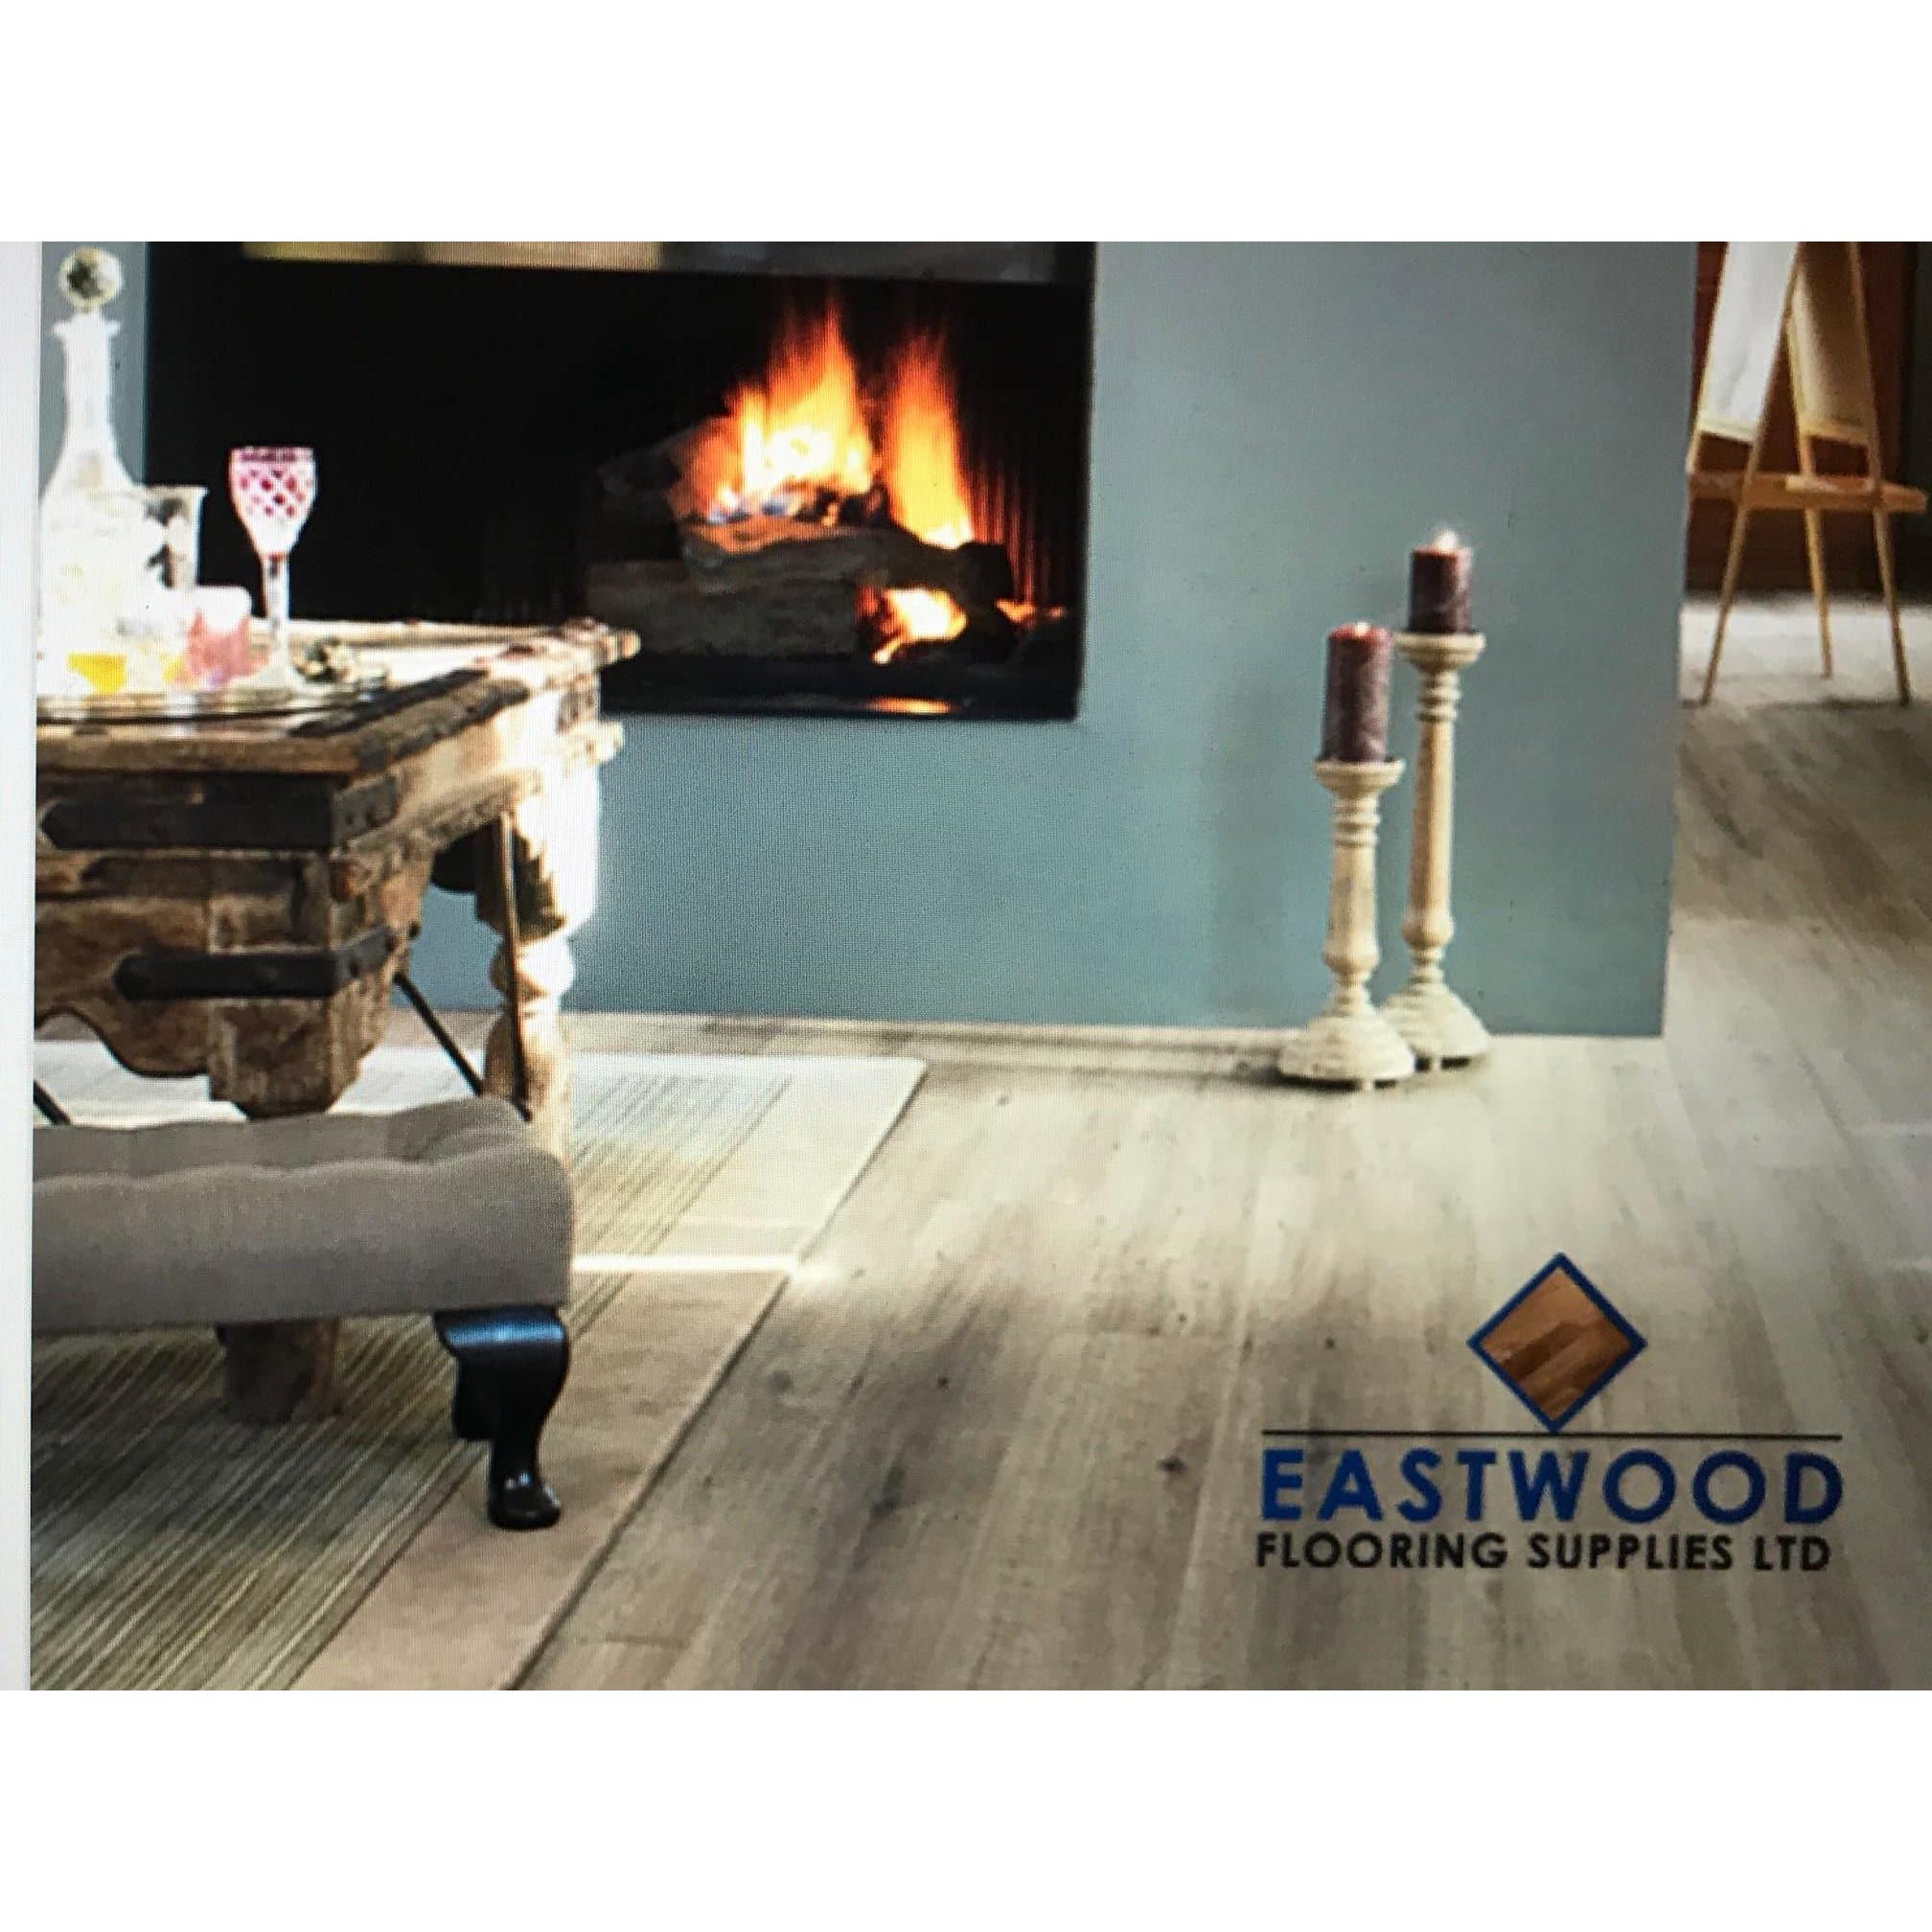 Eastwood Flooring Supplies Ltd